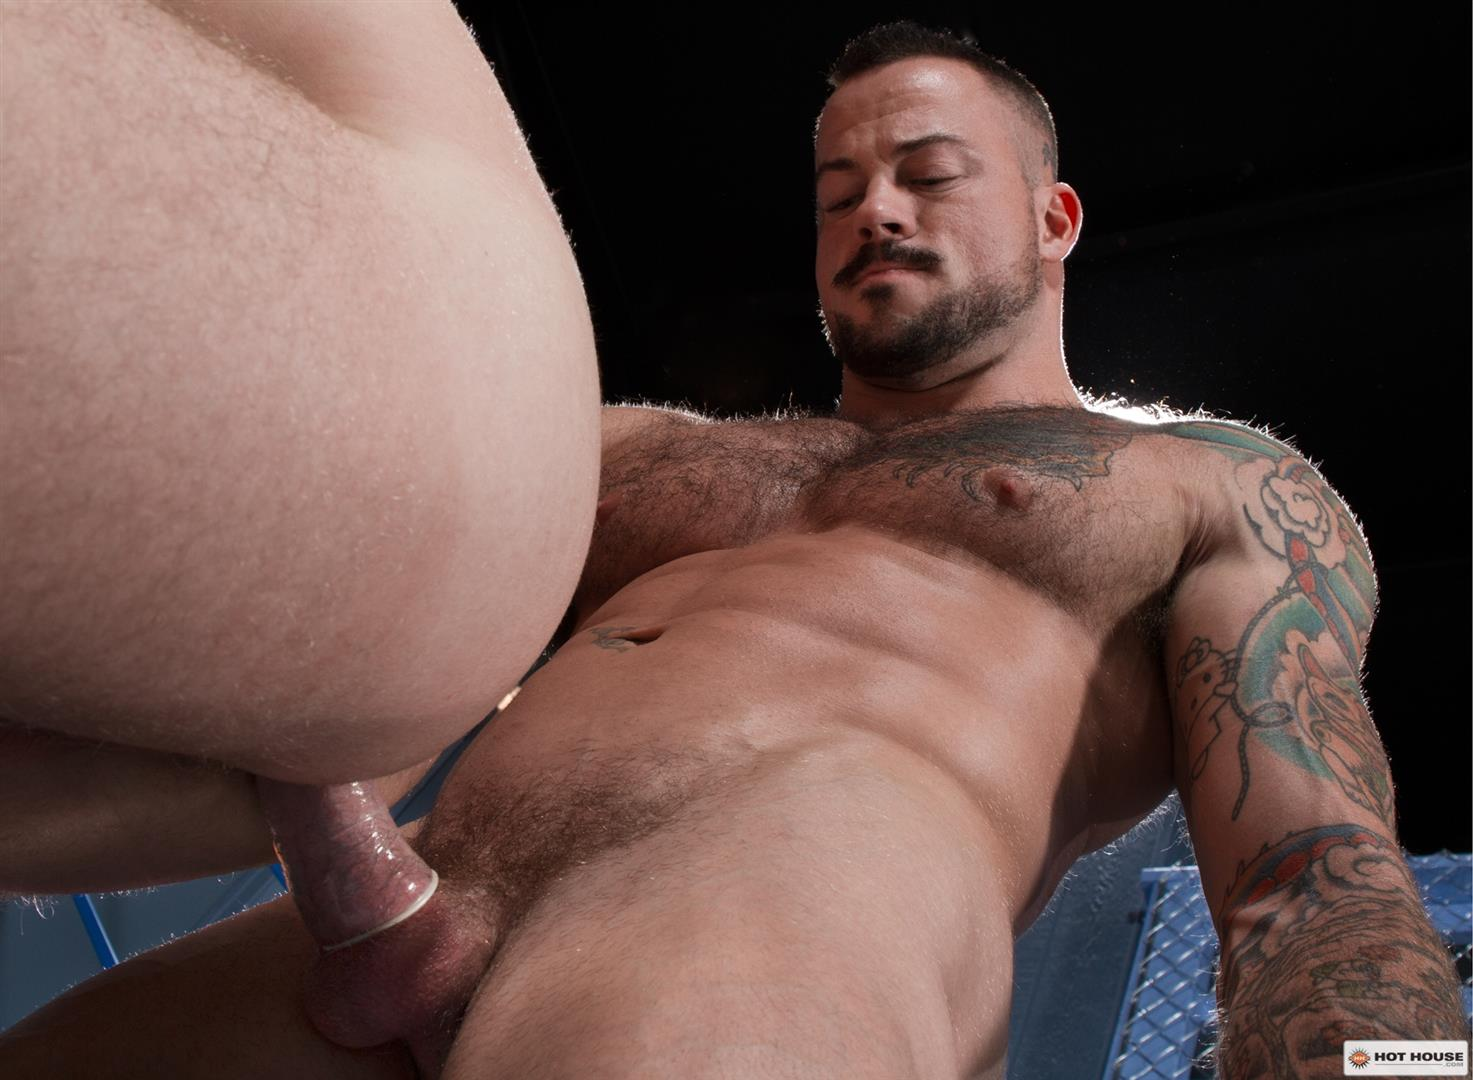 Hot-House-Brian-Bonds-and-Sean-Duran-Male-on-Male-Prison-Sex-Amateur-Gay-Porn-11 Correctional Officer Brian Bonds Gets Fucked By Inmate Sean Duran